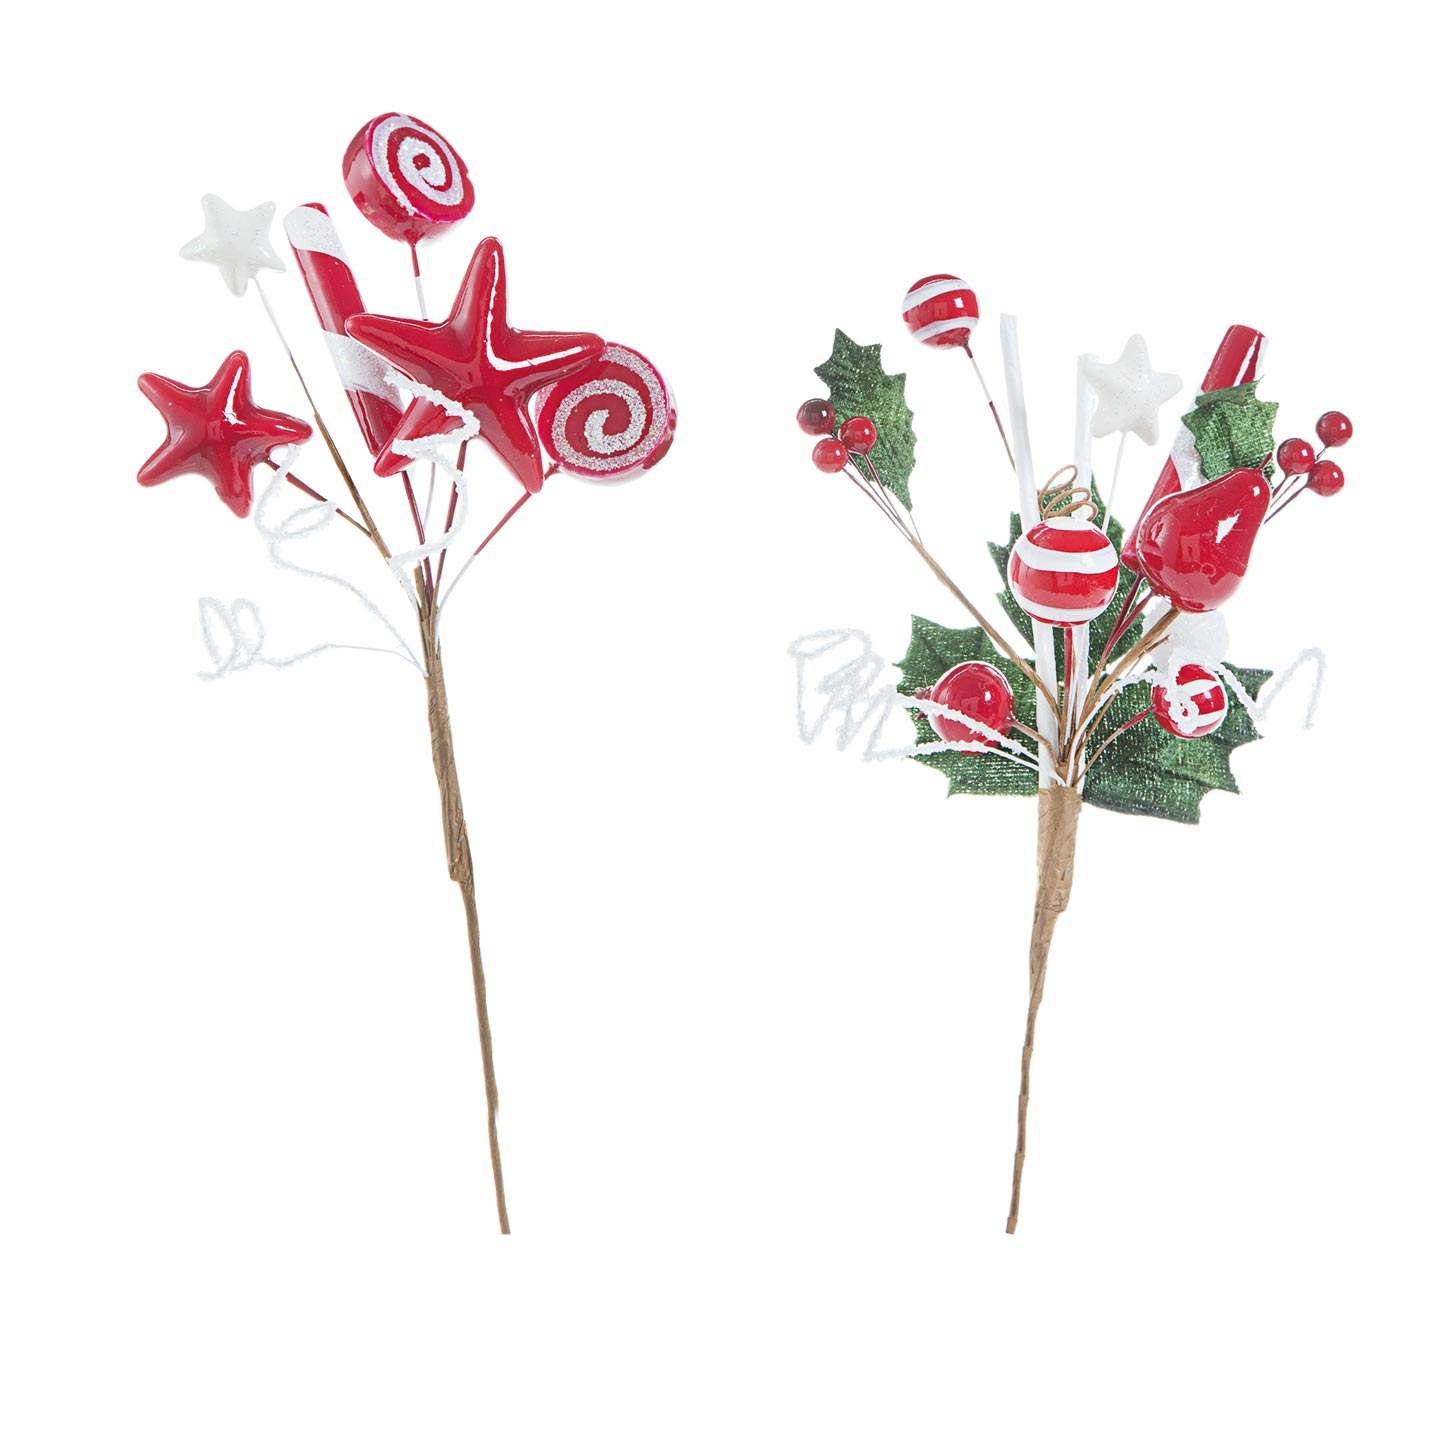 Peppermint Candy Christmas Picks: 11 inches